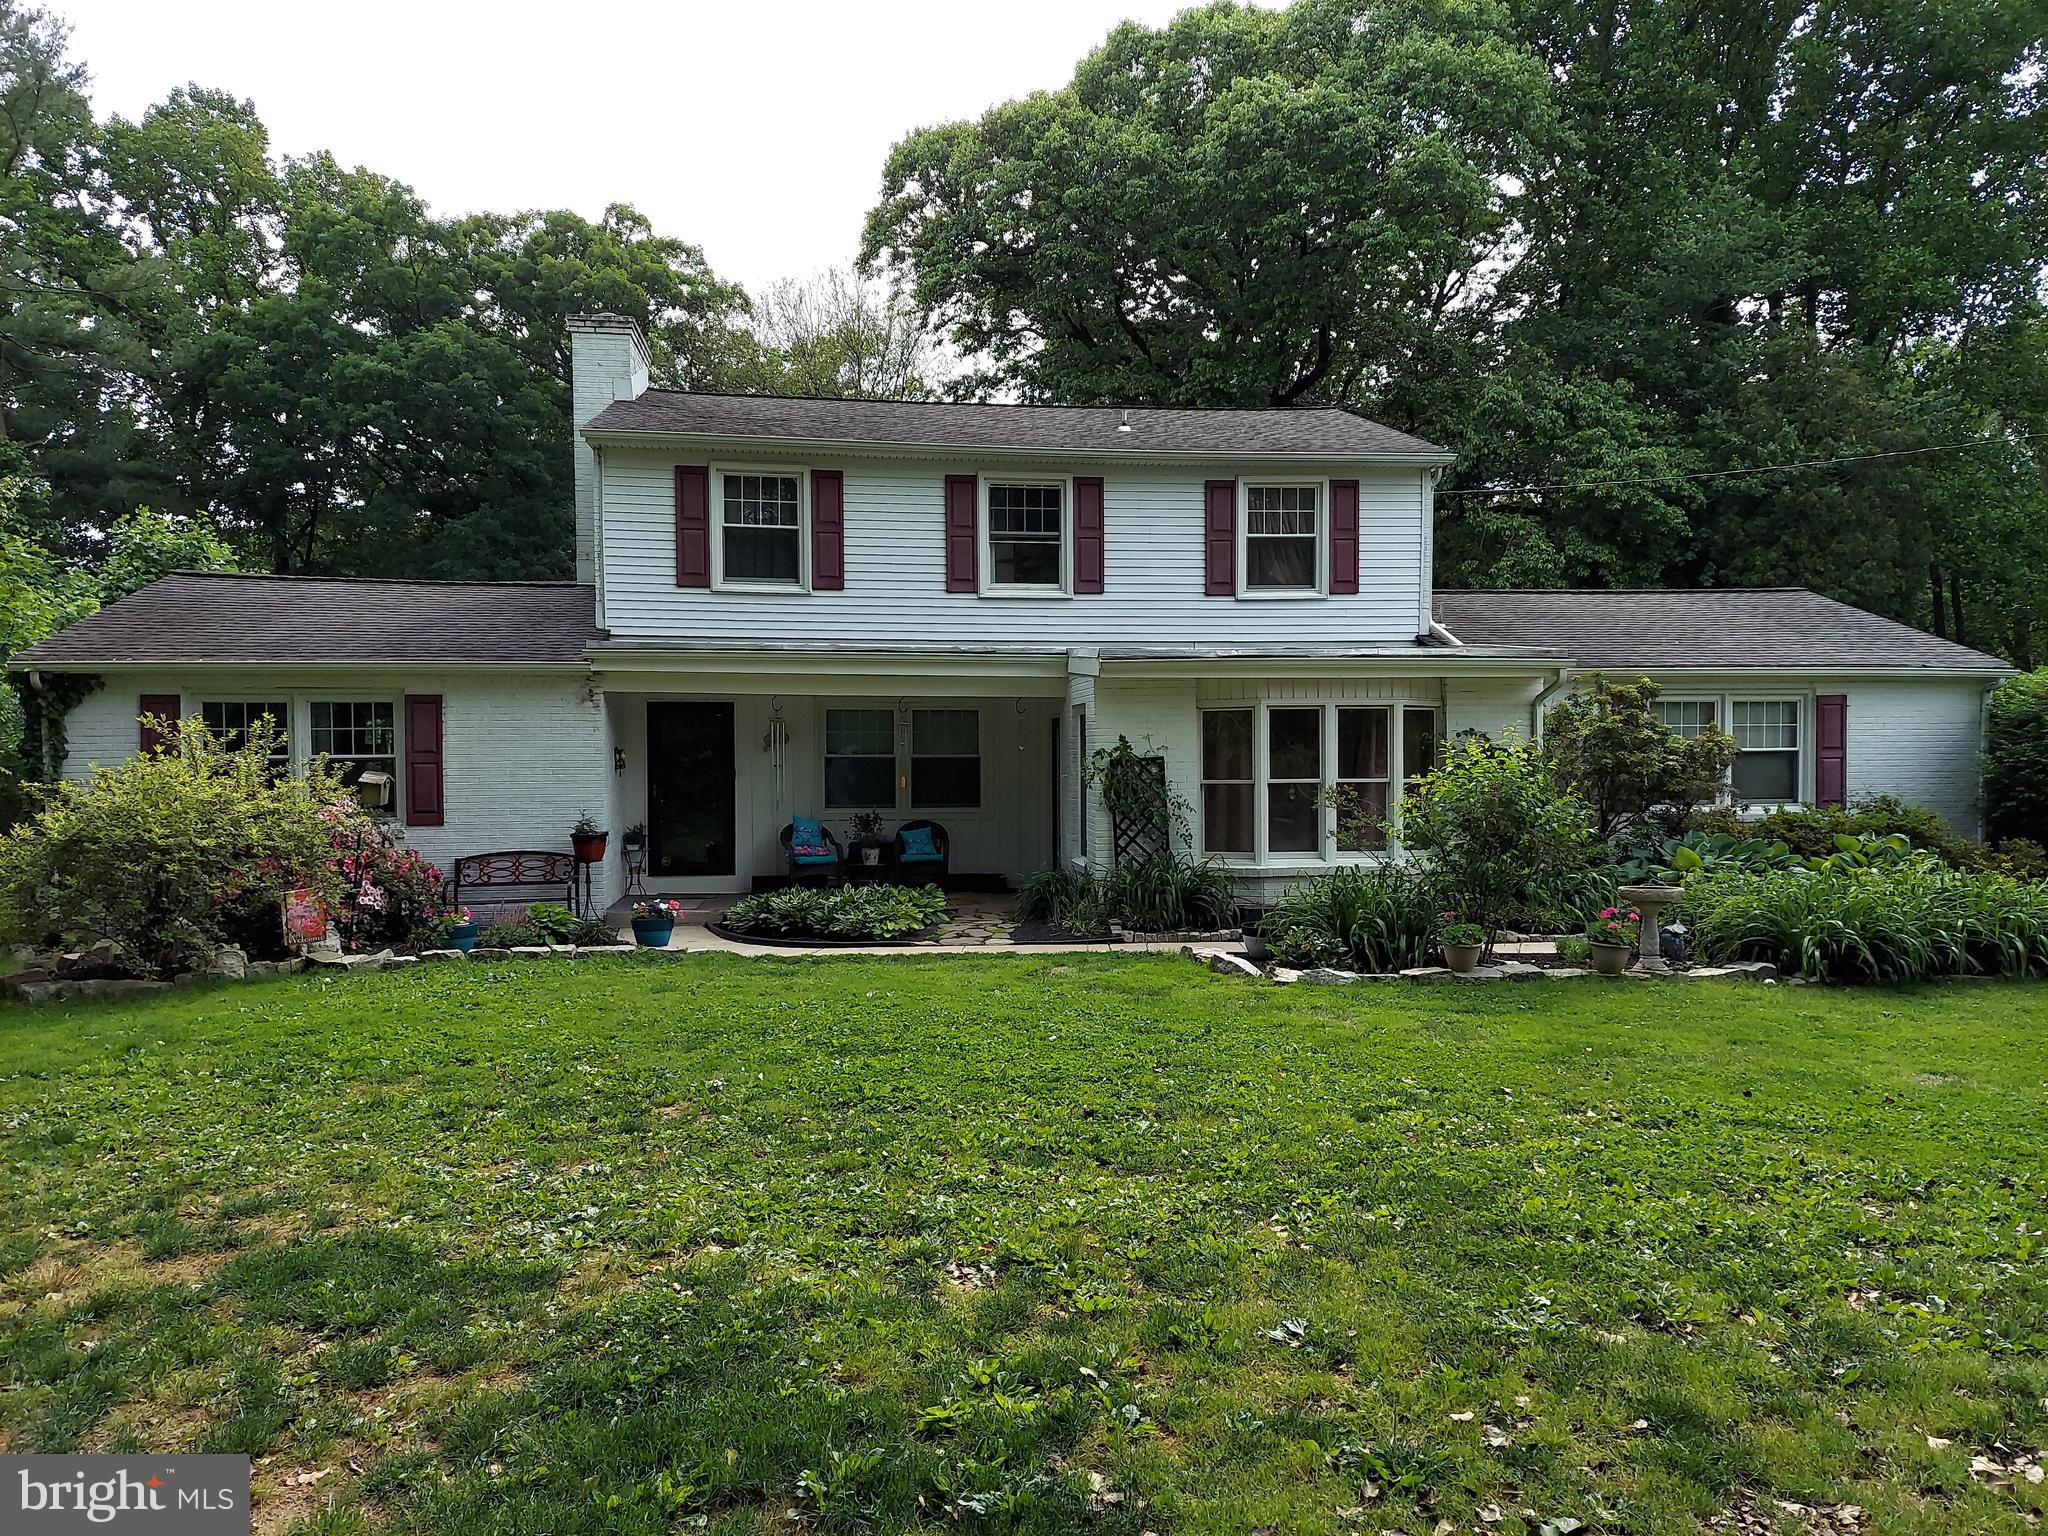 Location, Location, Location.   This 3,000 sq. ft. plus home w/ 3 bedrooms 2.5 bathrooms on 1.8 acre